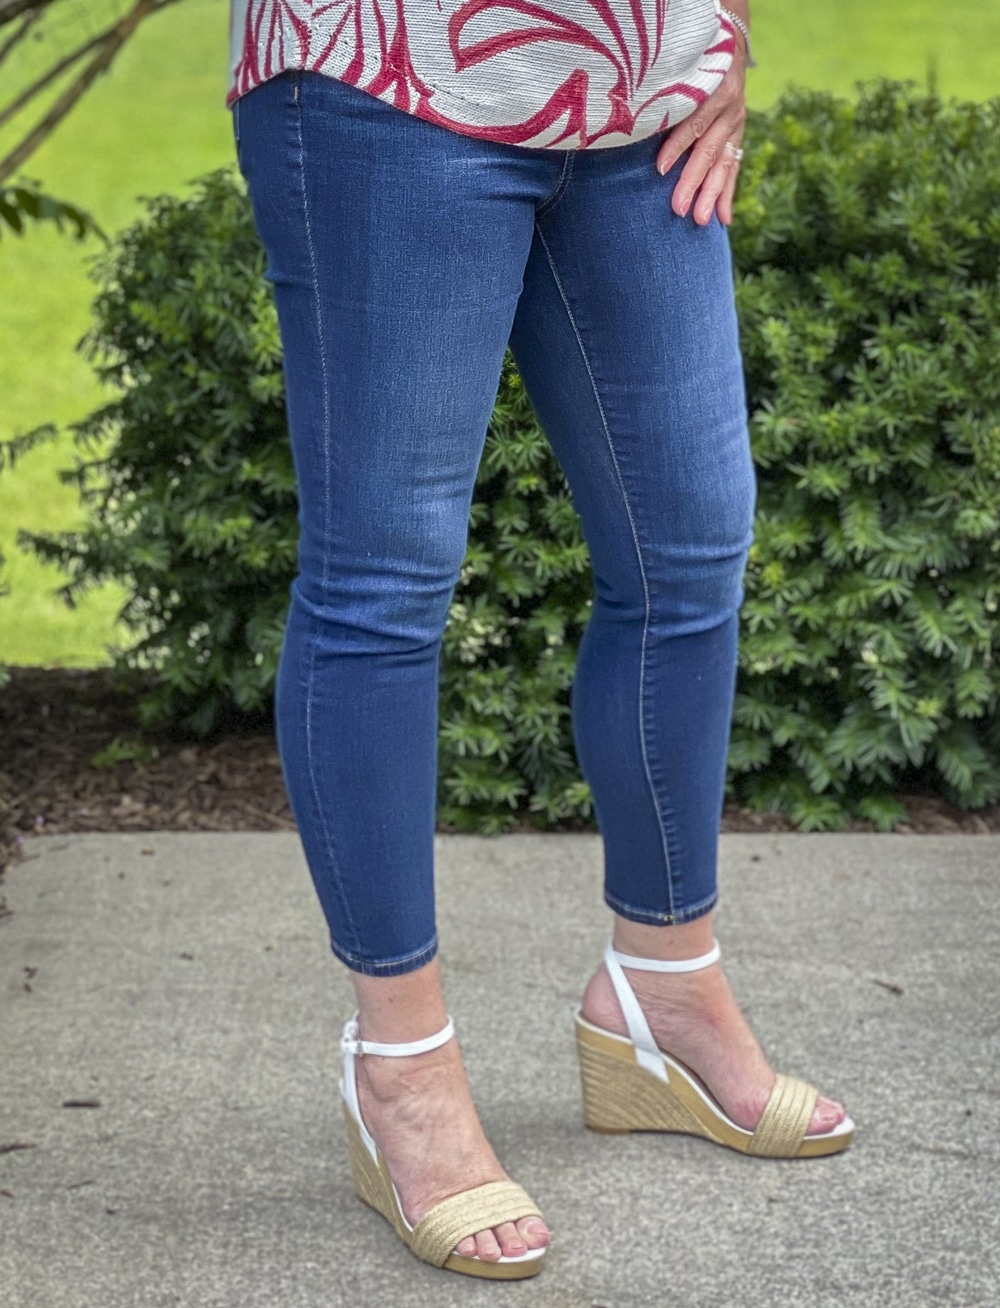 Fashion Blogger 50 Is Not Old is wearing skinny ankle jeans from Chico's